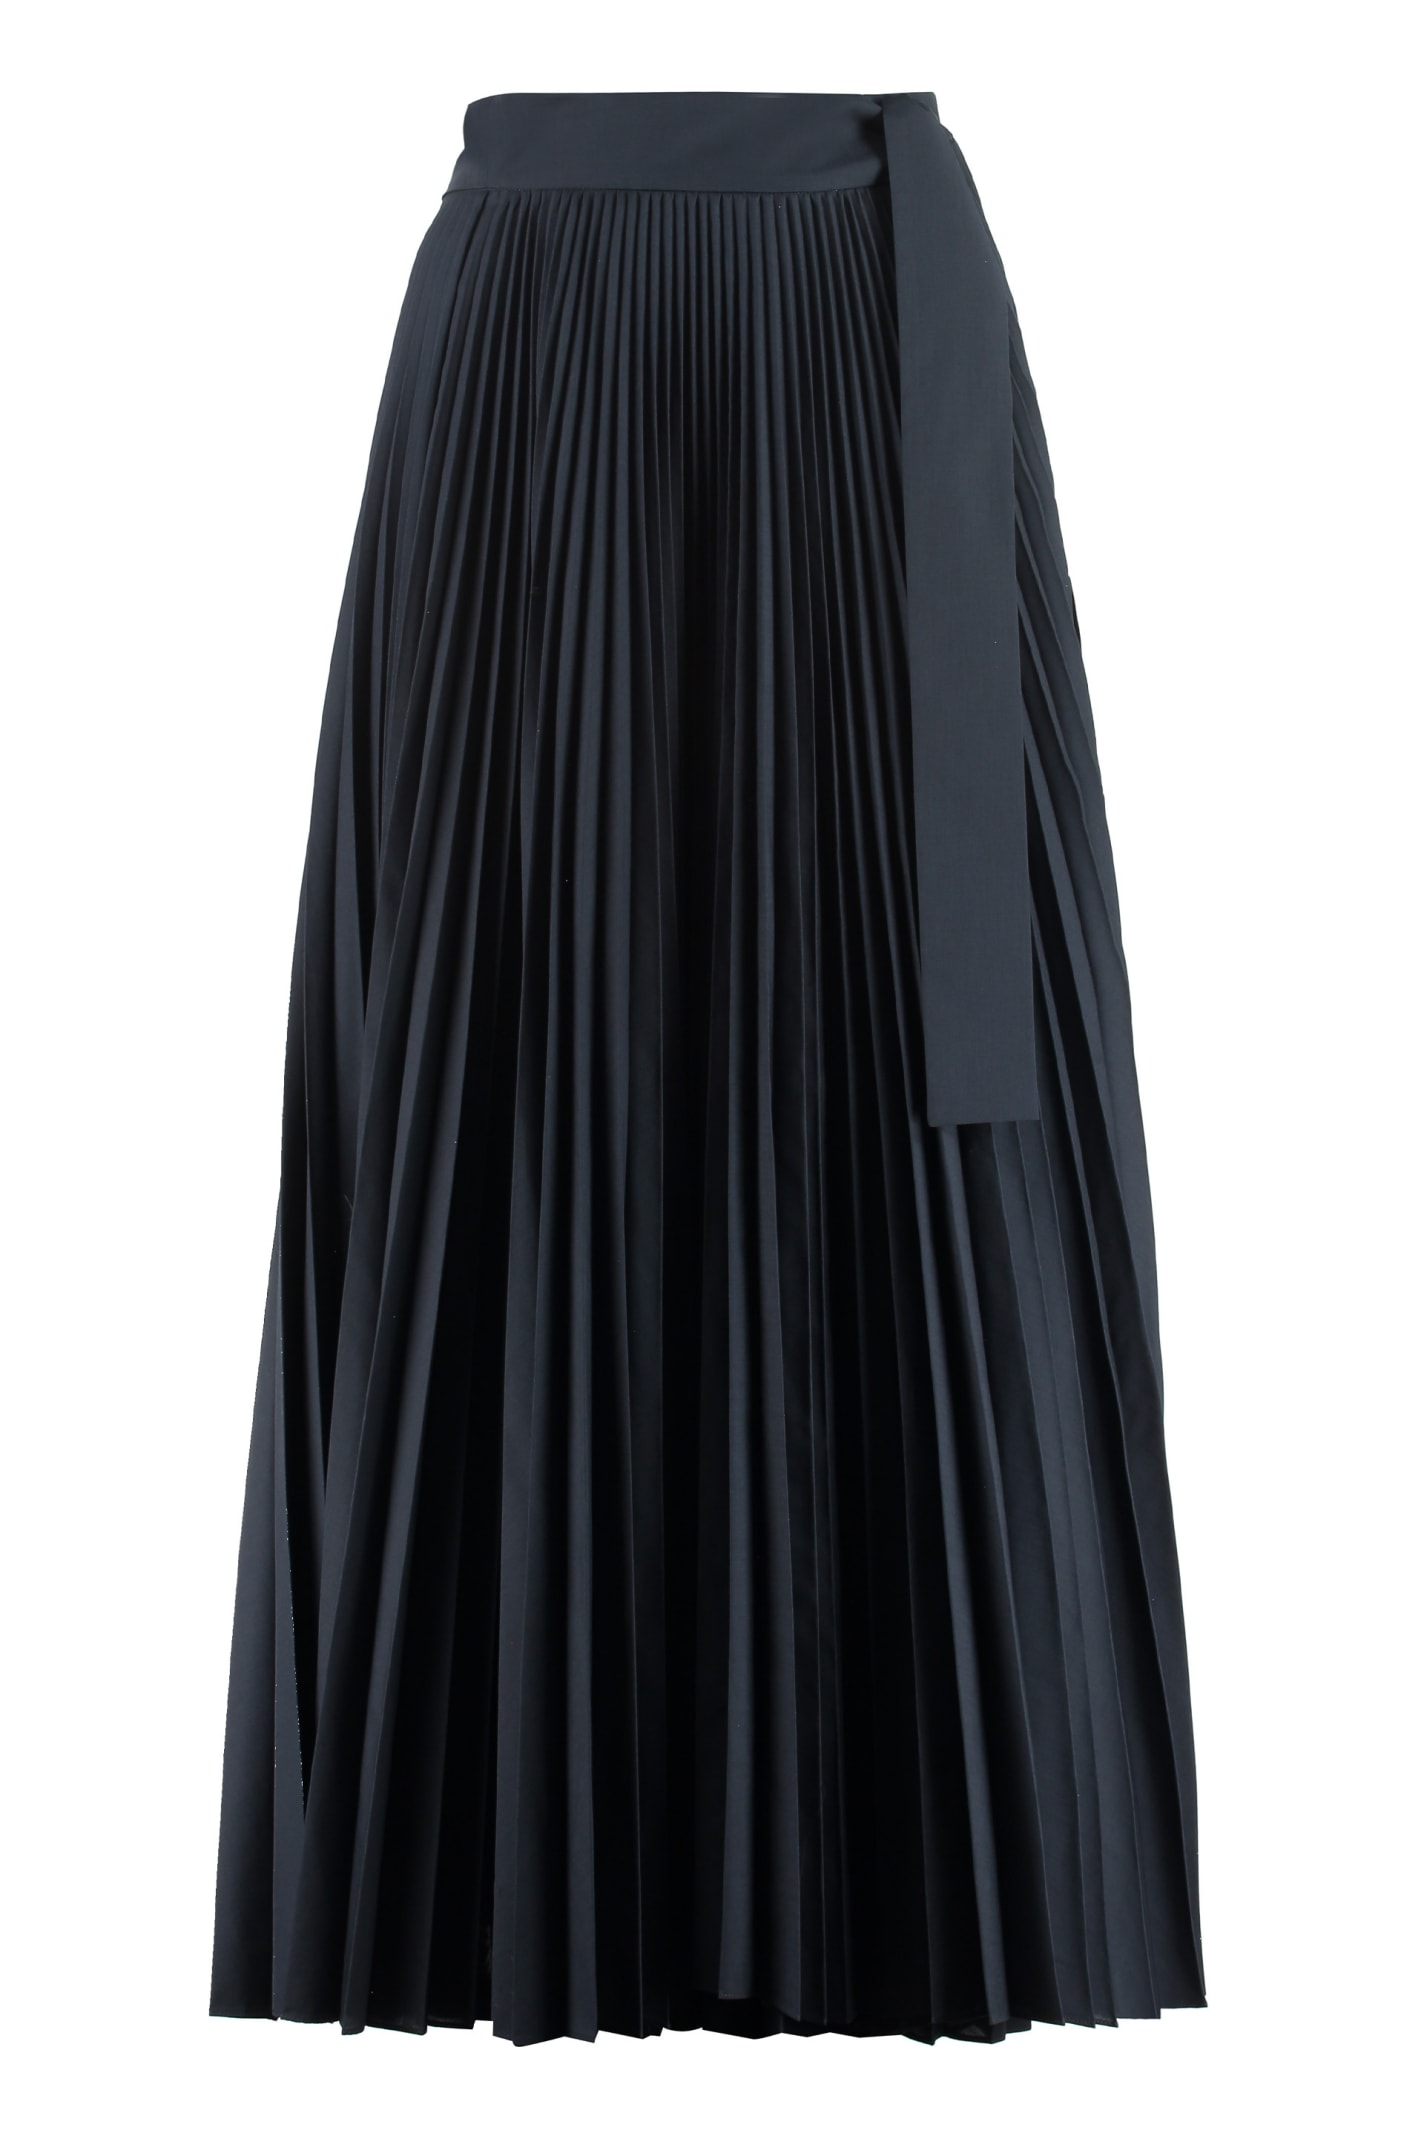 Parosh Pope Pleated Skirt